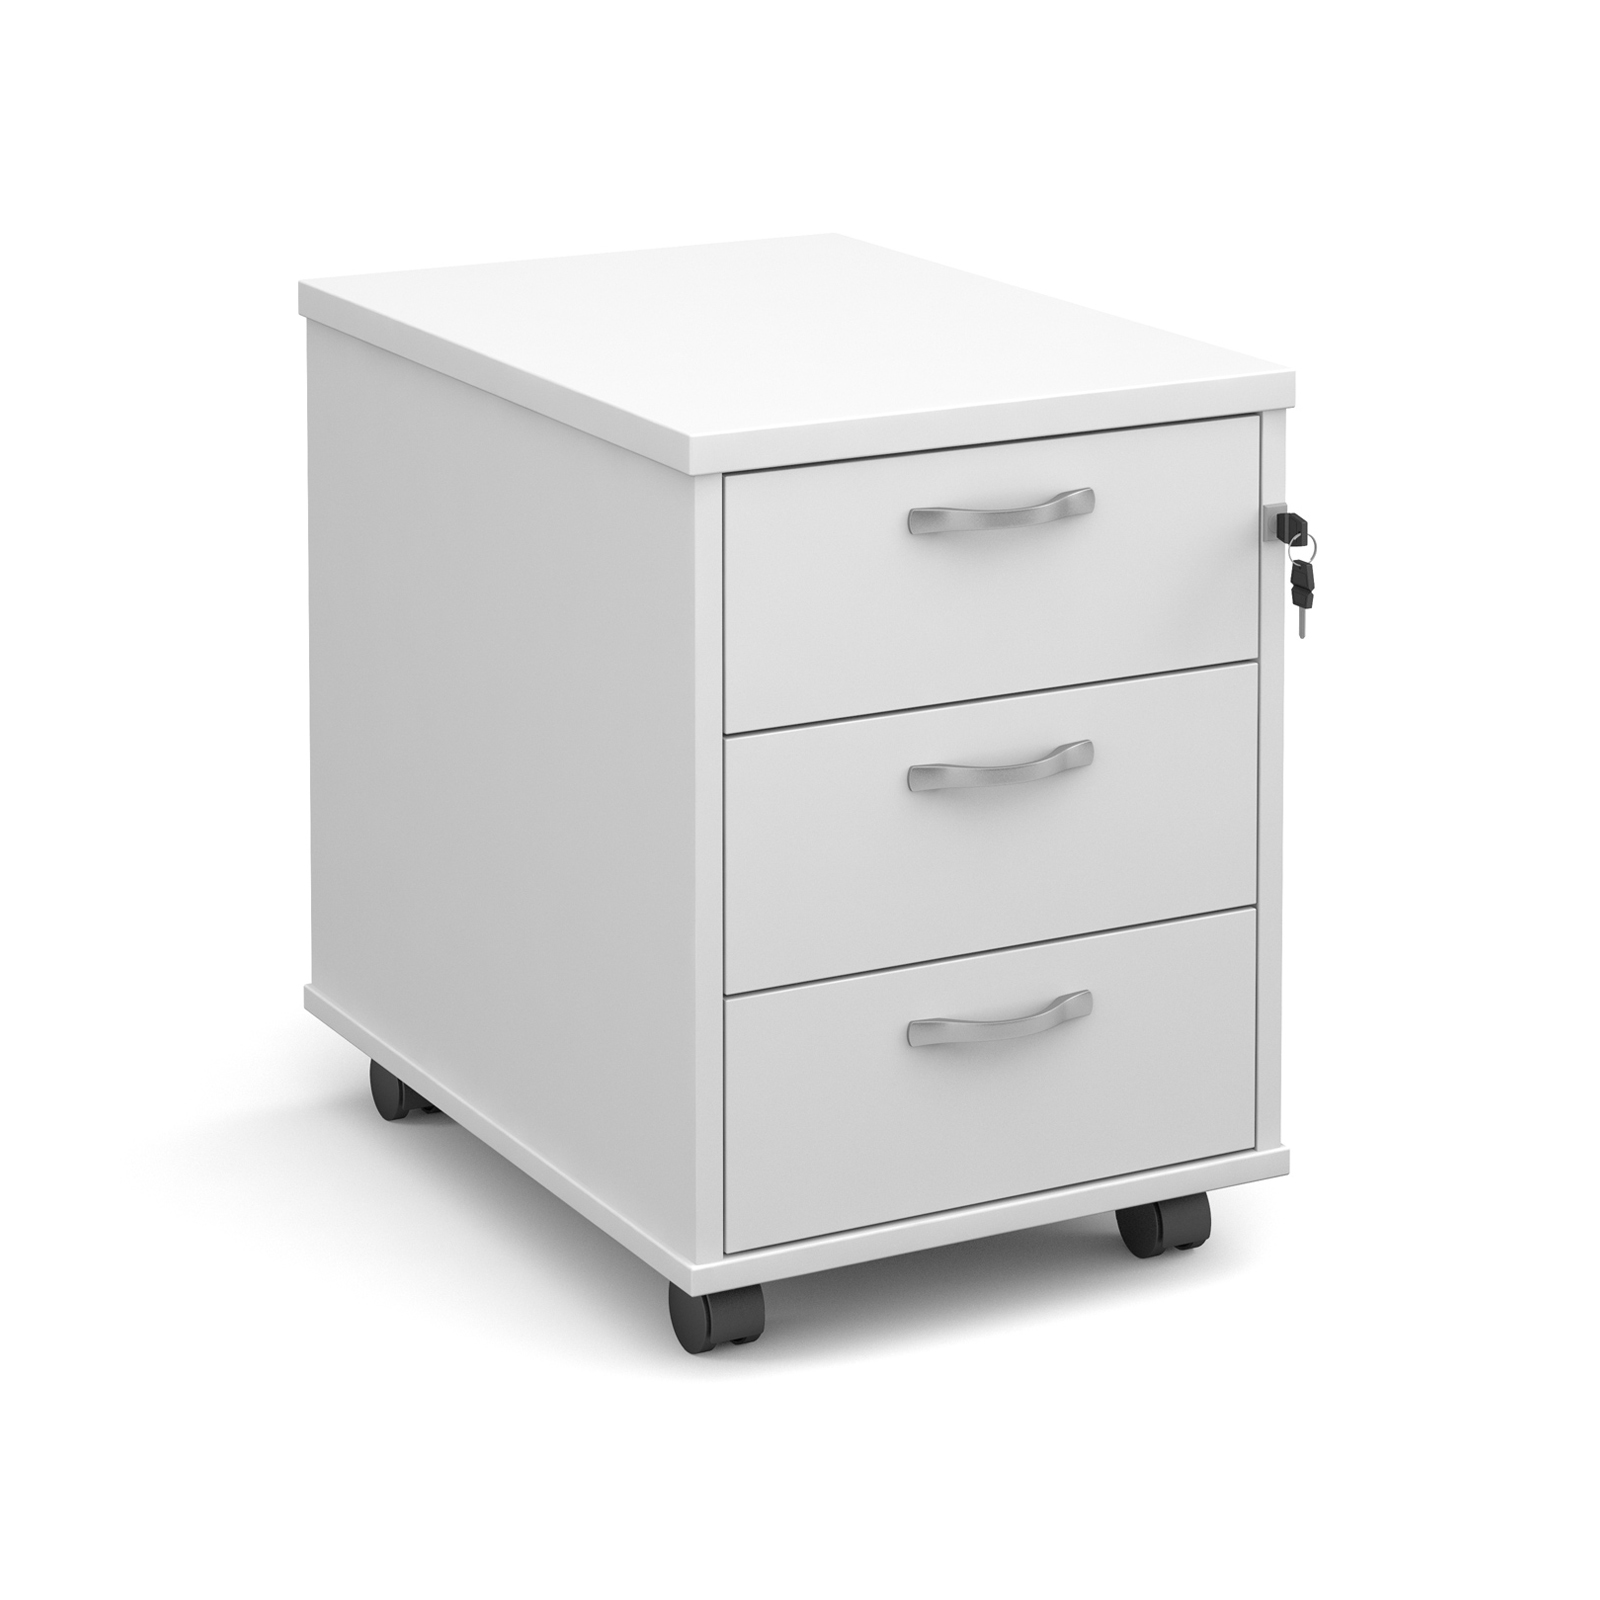 Mobile 3 drawer pedestal with silver handles 600mm deep - white